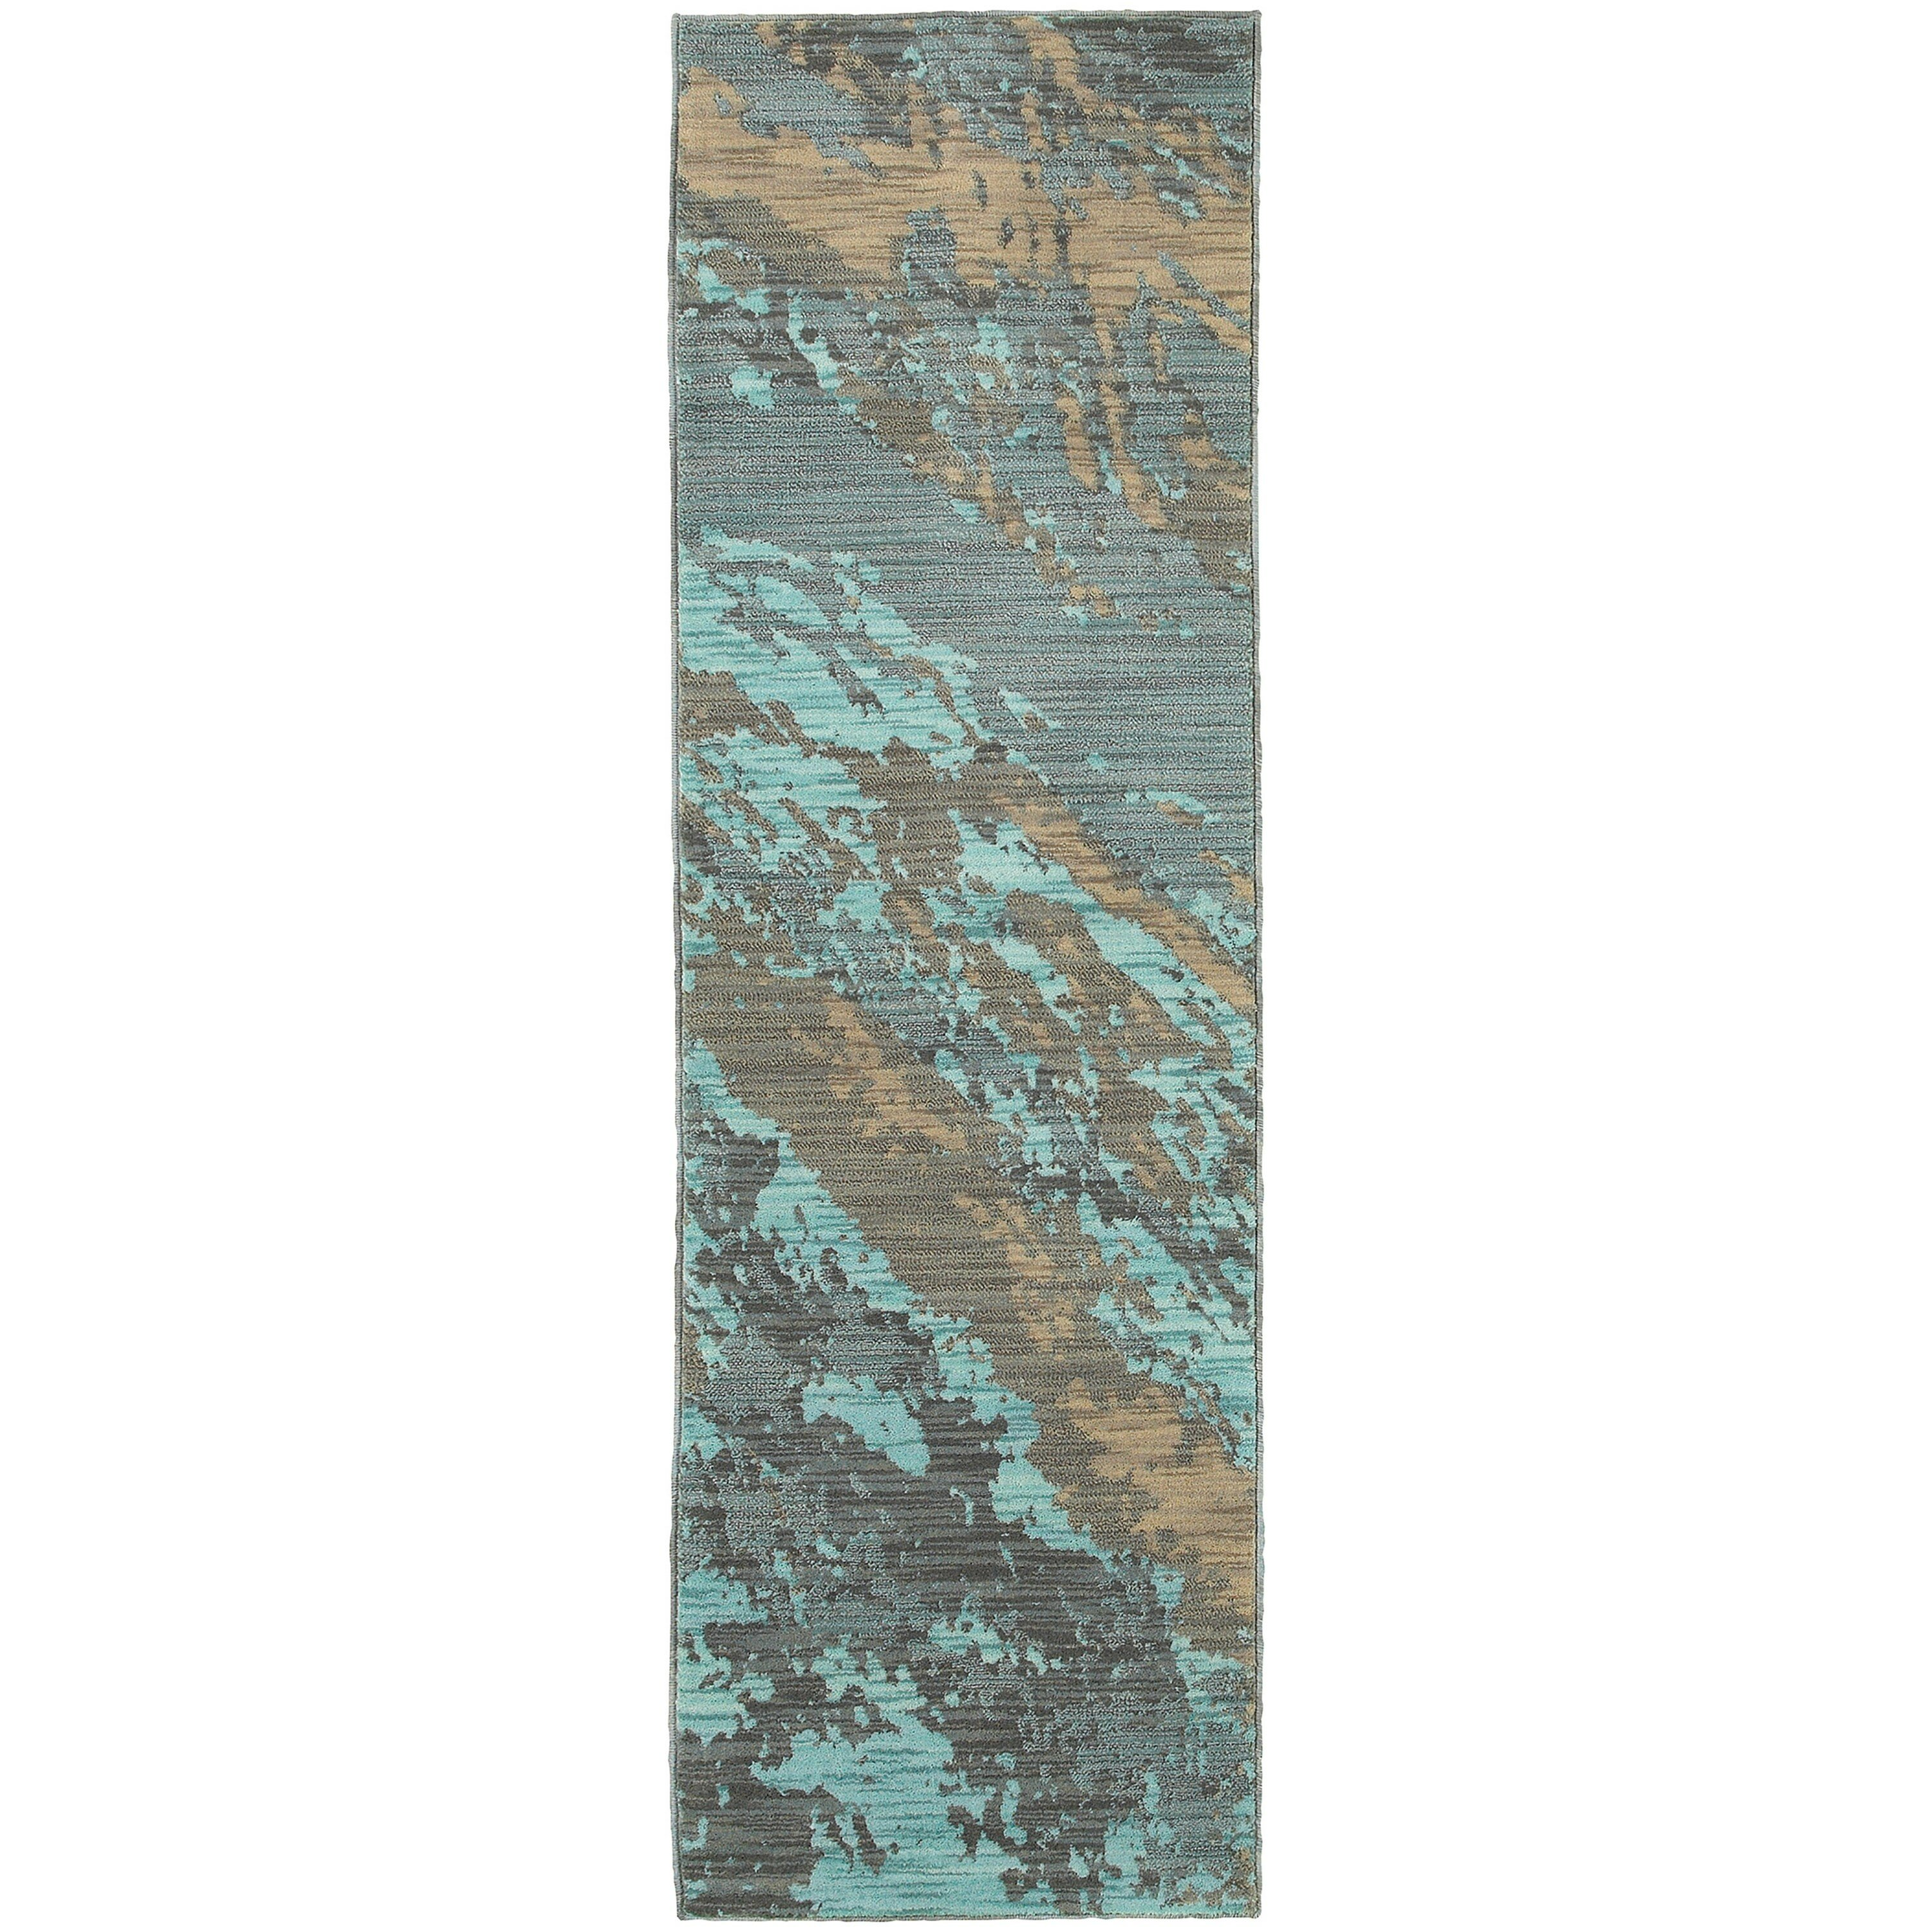 The Conestoga Trading Co Agave Marble Teal Gray Area Rug